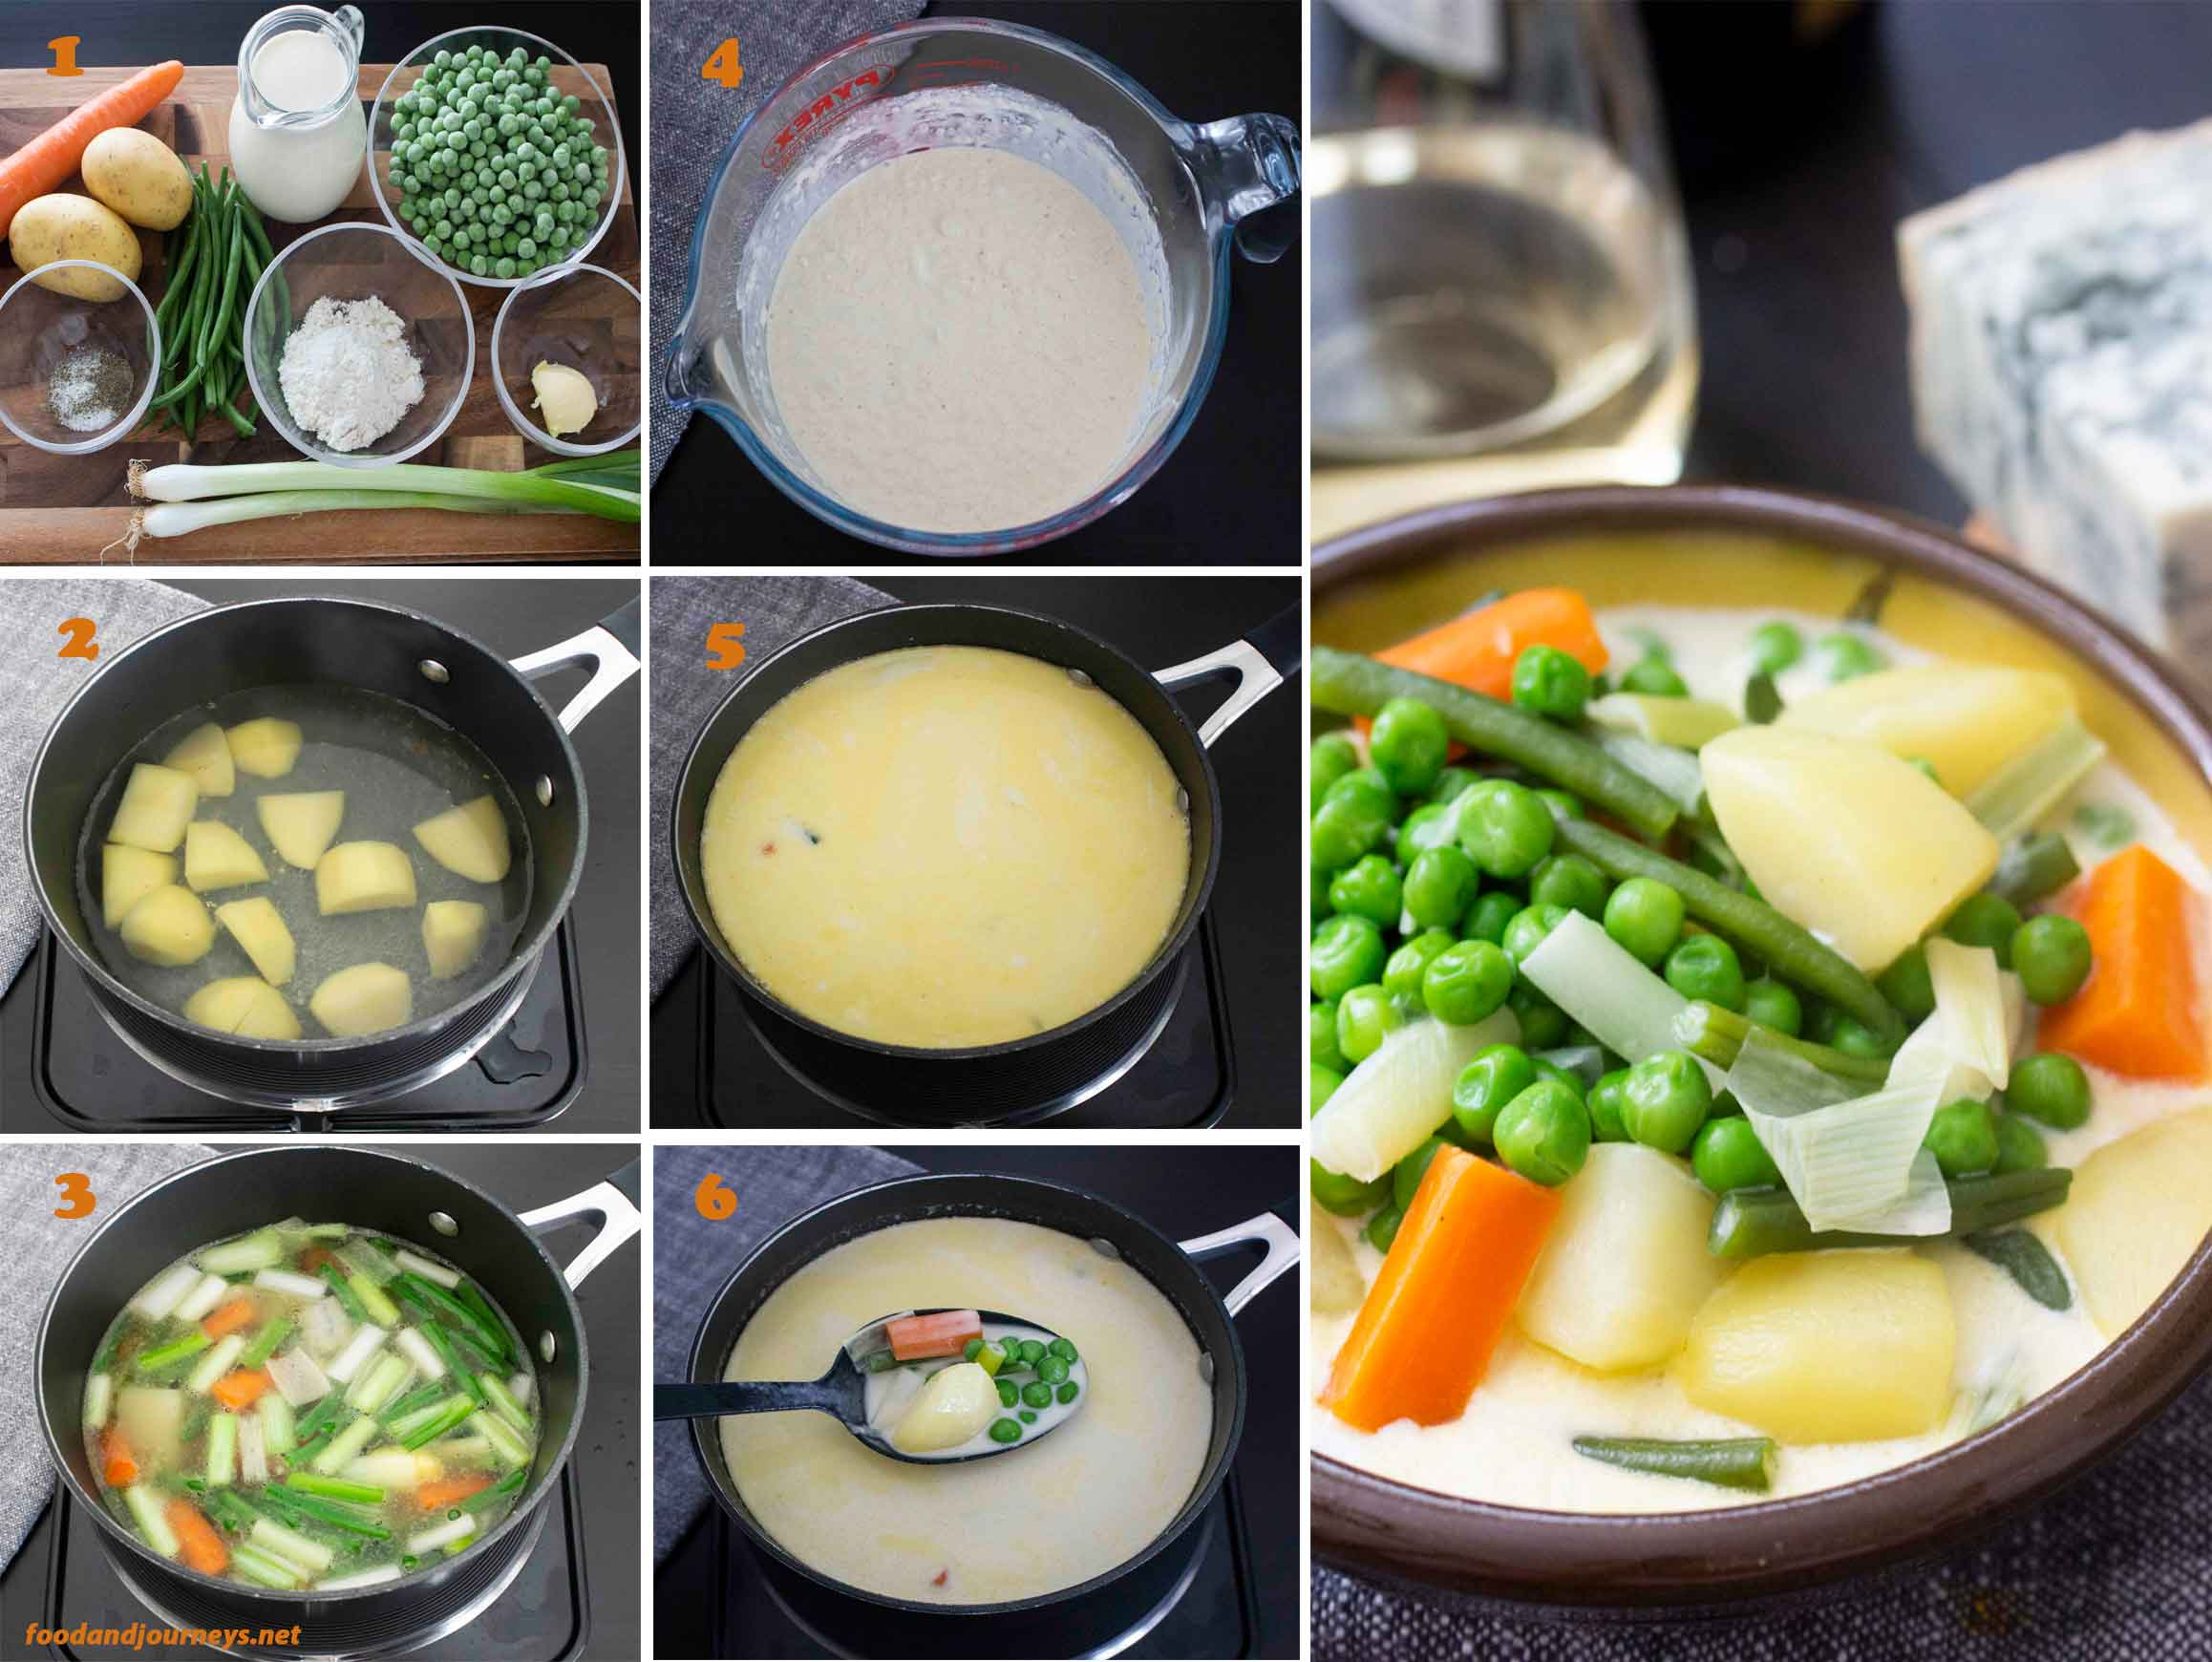 A collage of images showing the step by step process of making Finnish Summer Soup